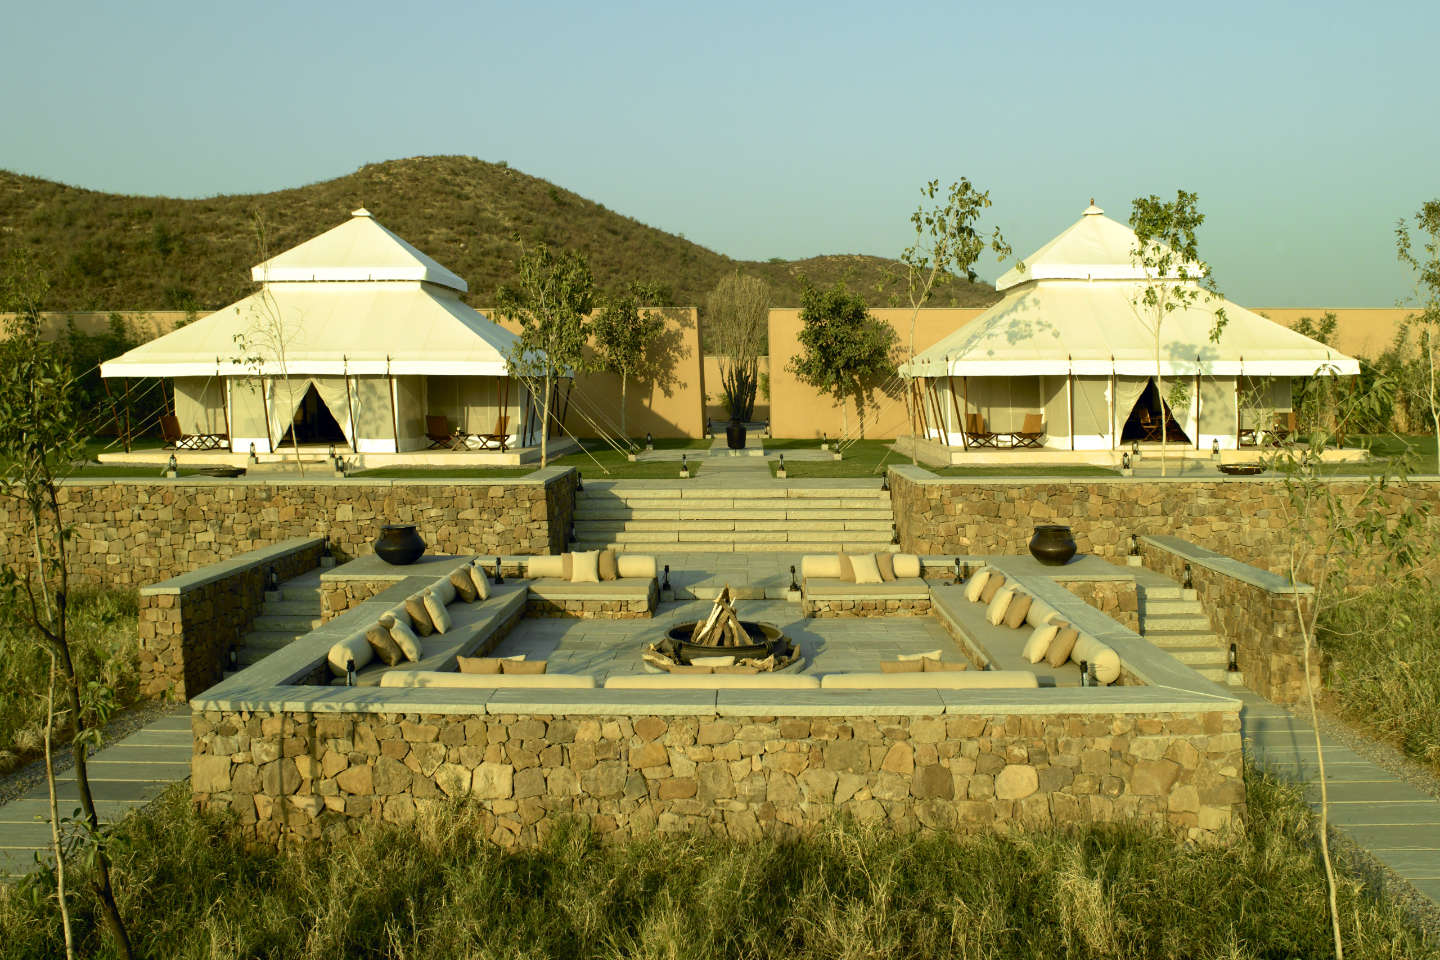 Aman-I-Khas Lounge and dining tents and main fireplace